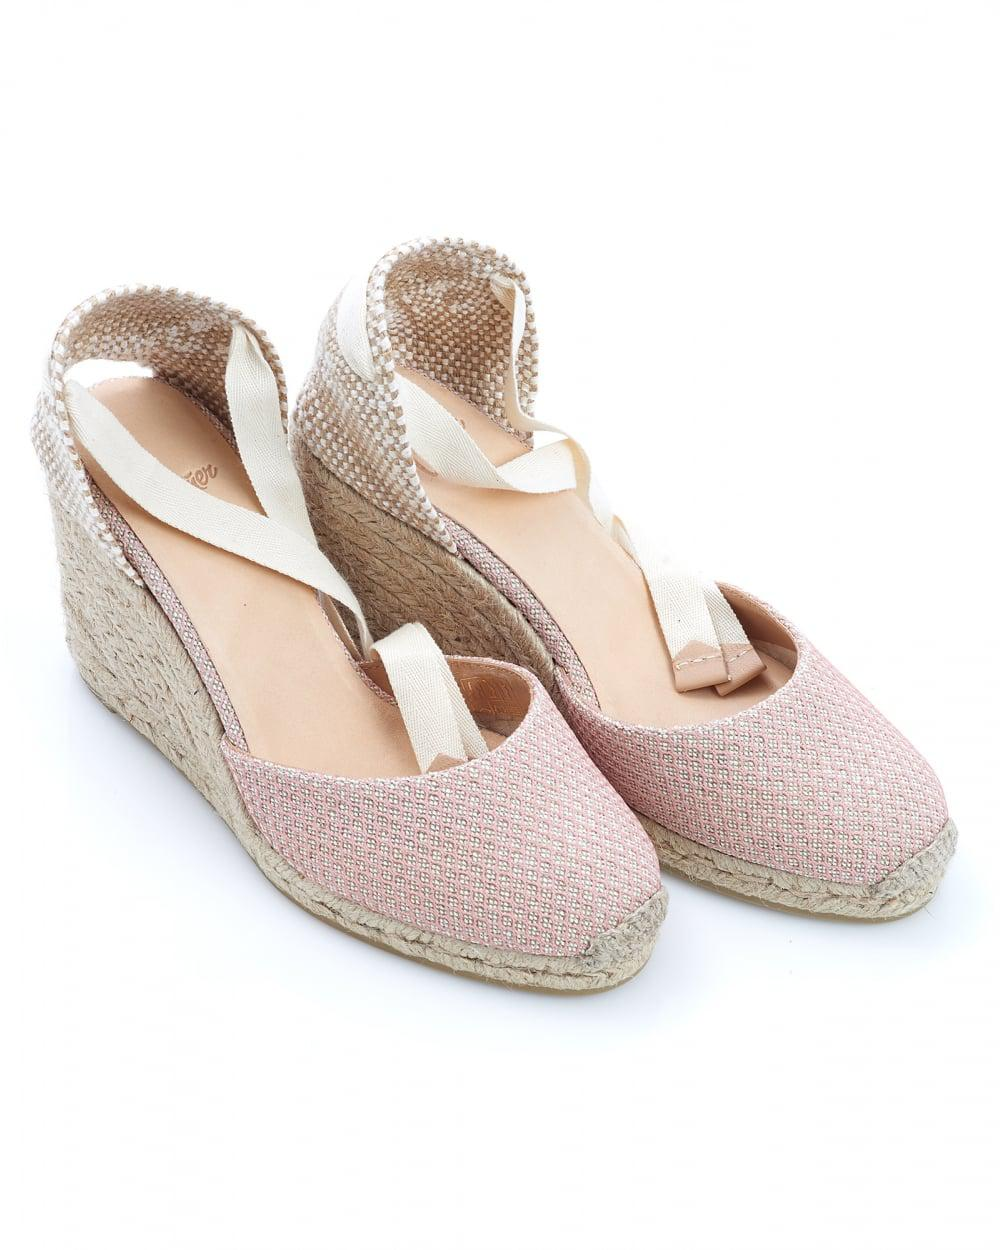 3aaad8367 Castaner Carina8 Espadrilles, Nude Textured Ankle Tie Wedges in ...